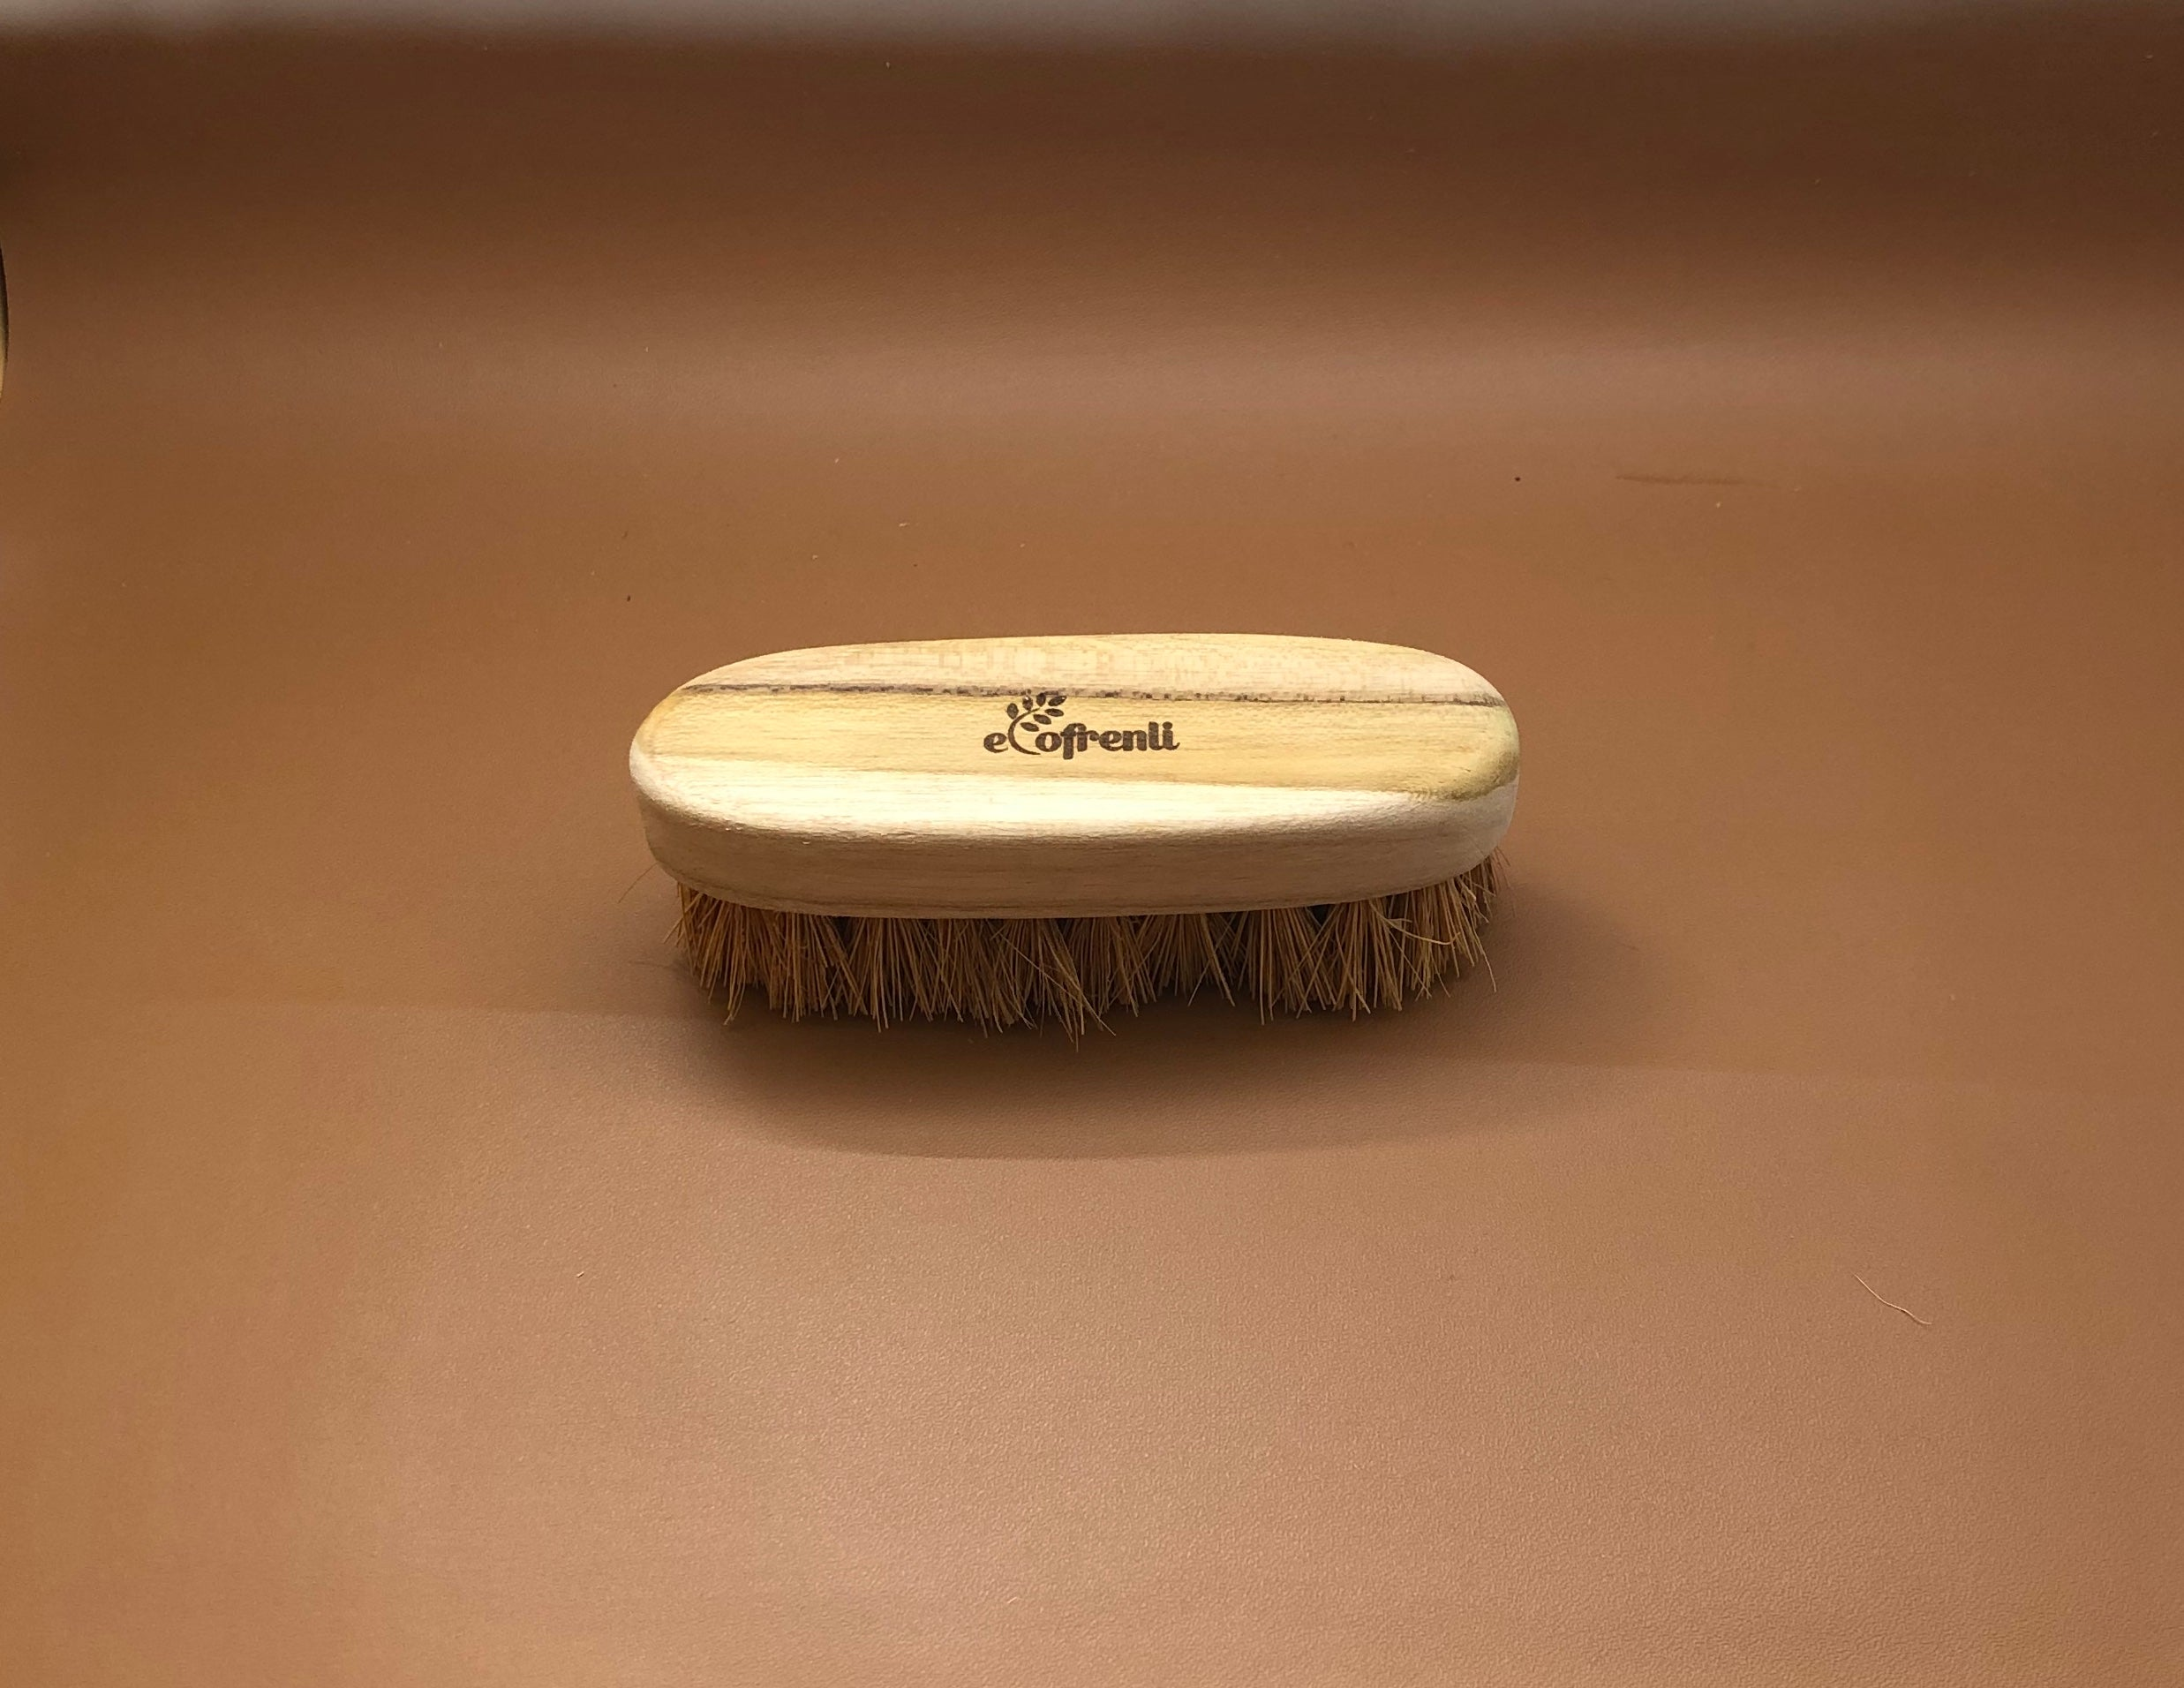 'I'M HANDMADE' All purpose Sink Brush Cleaner - Ecofrenli.com